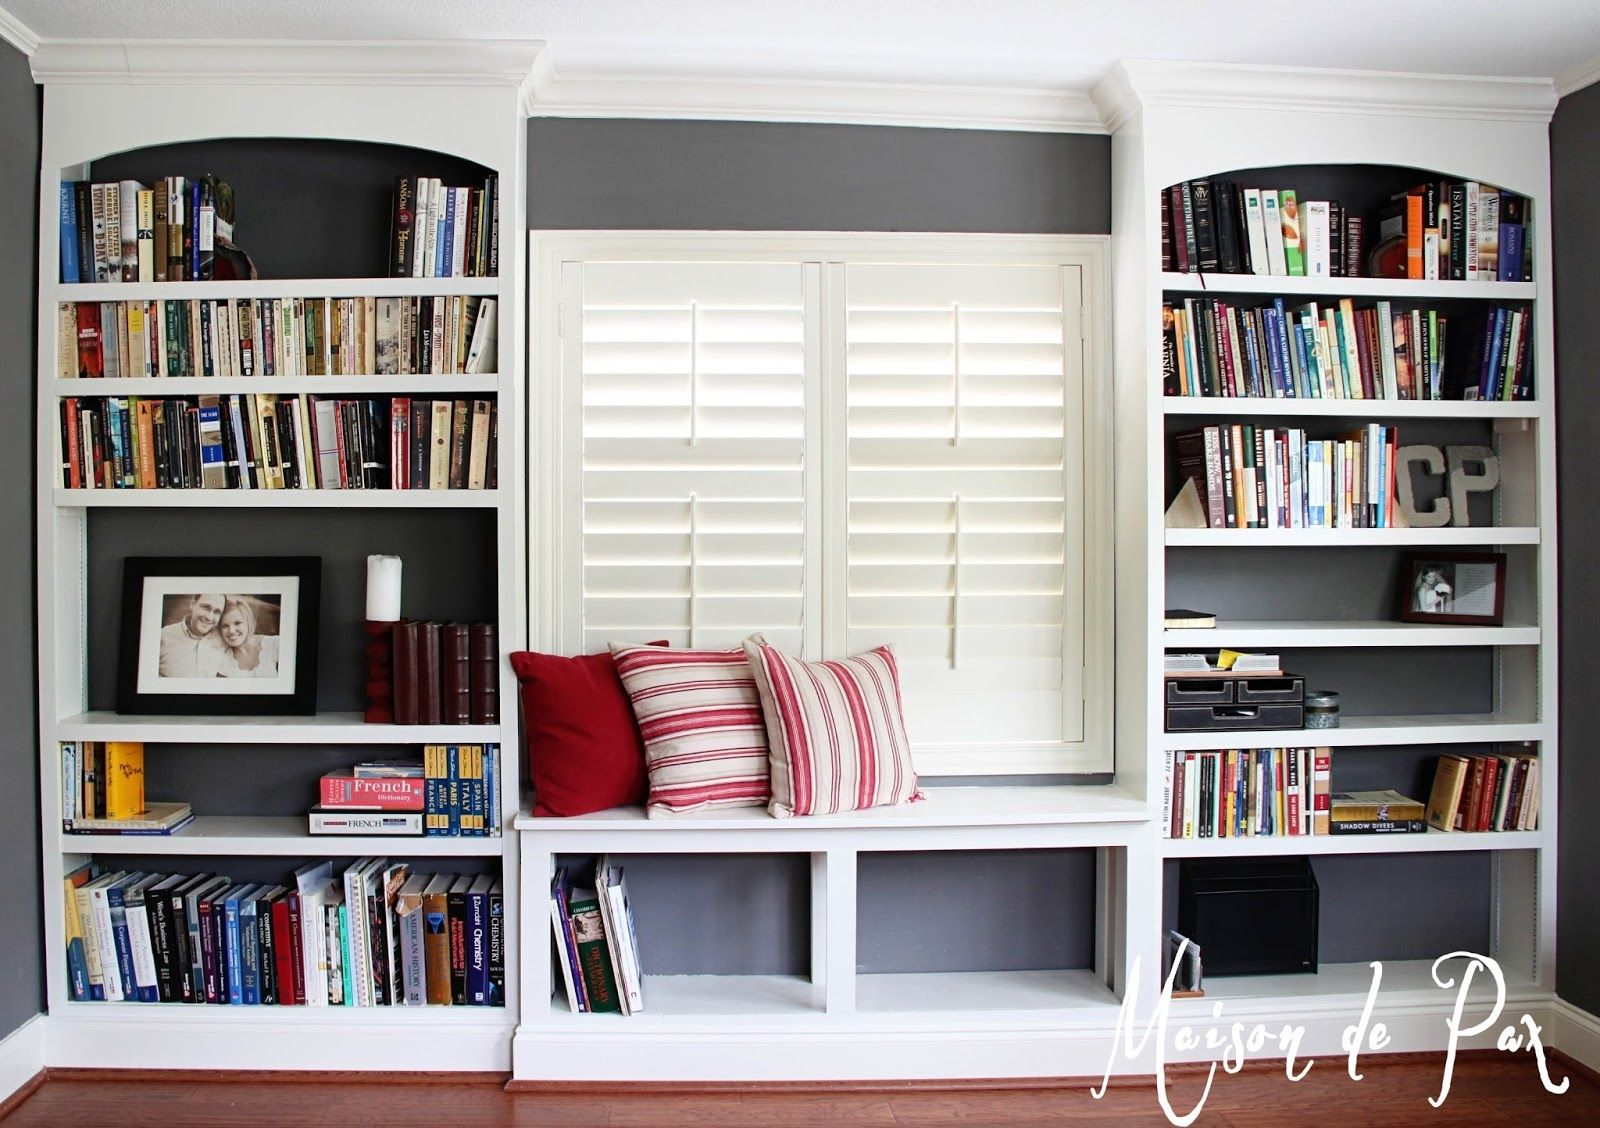 Built In Shelves Around Window Bookshelves Built In Home Bookshelves Diy